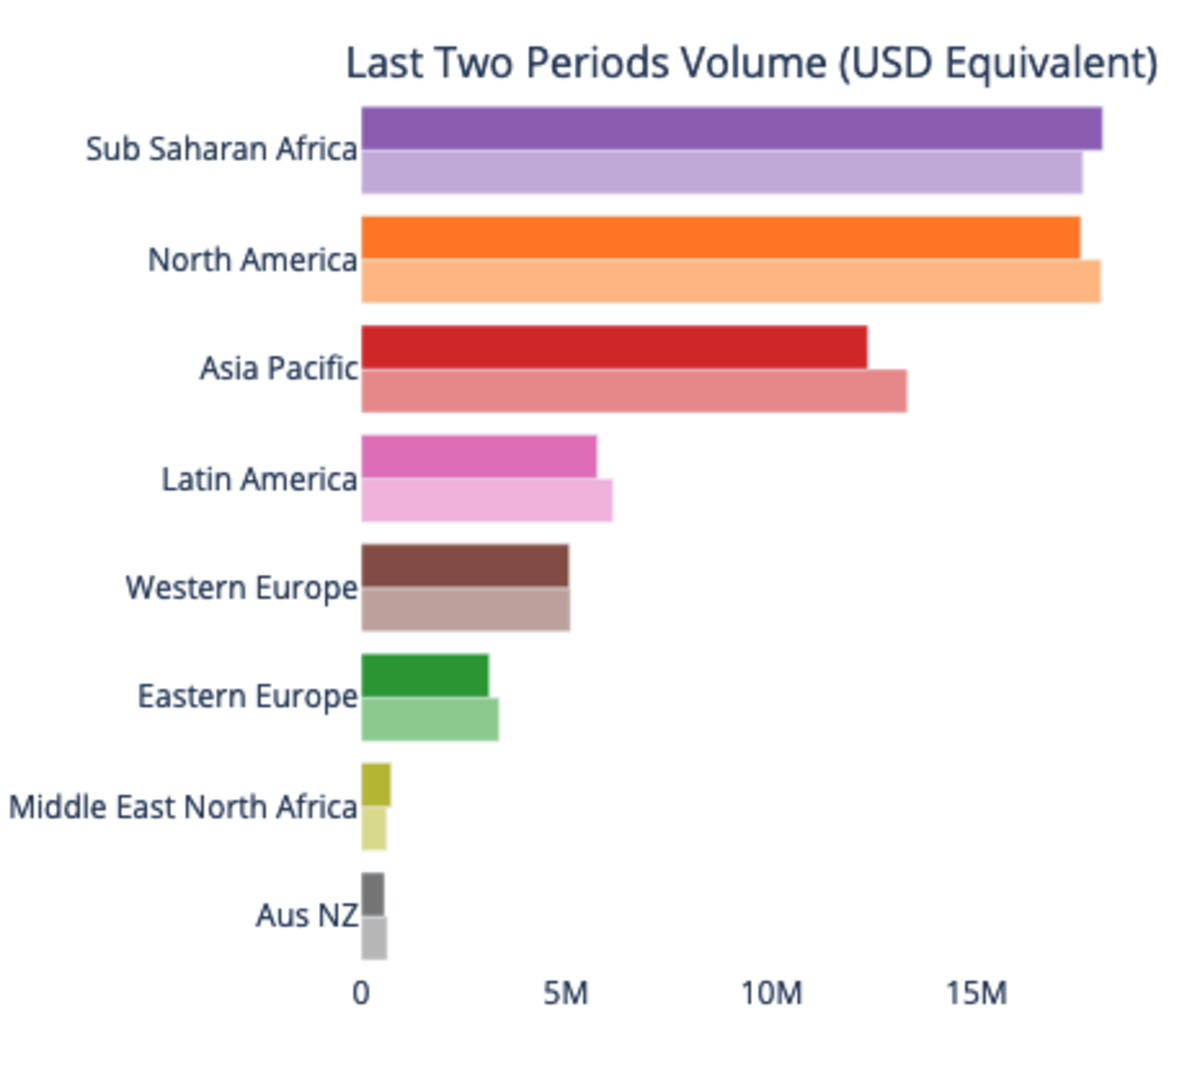 Bitcoin trading volume, in Paxful and LocalBitcoins combined, in continents in 7-day periods. Solid colored bars represent the most recent period, while faded bars represent the period before that. Source: UsefulTulips.